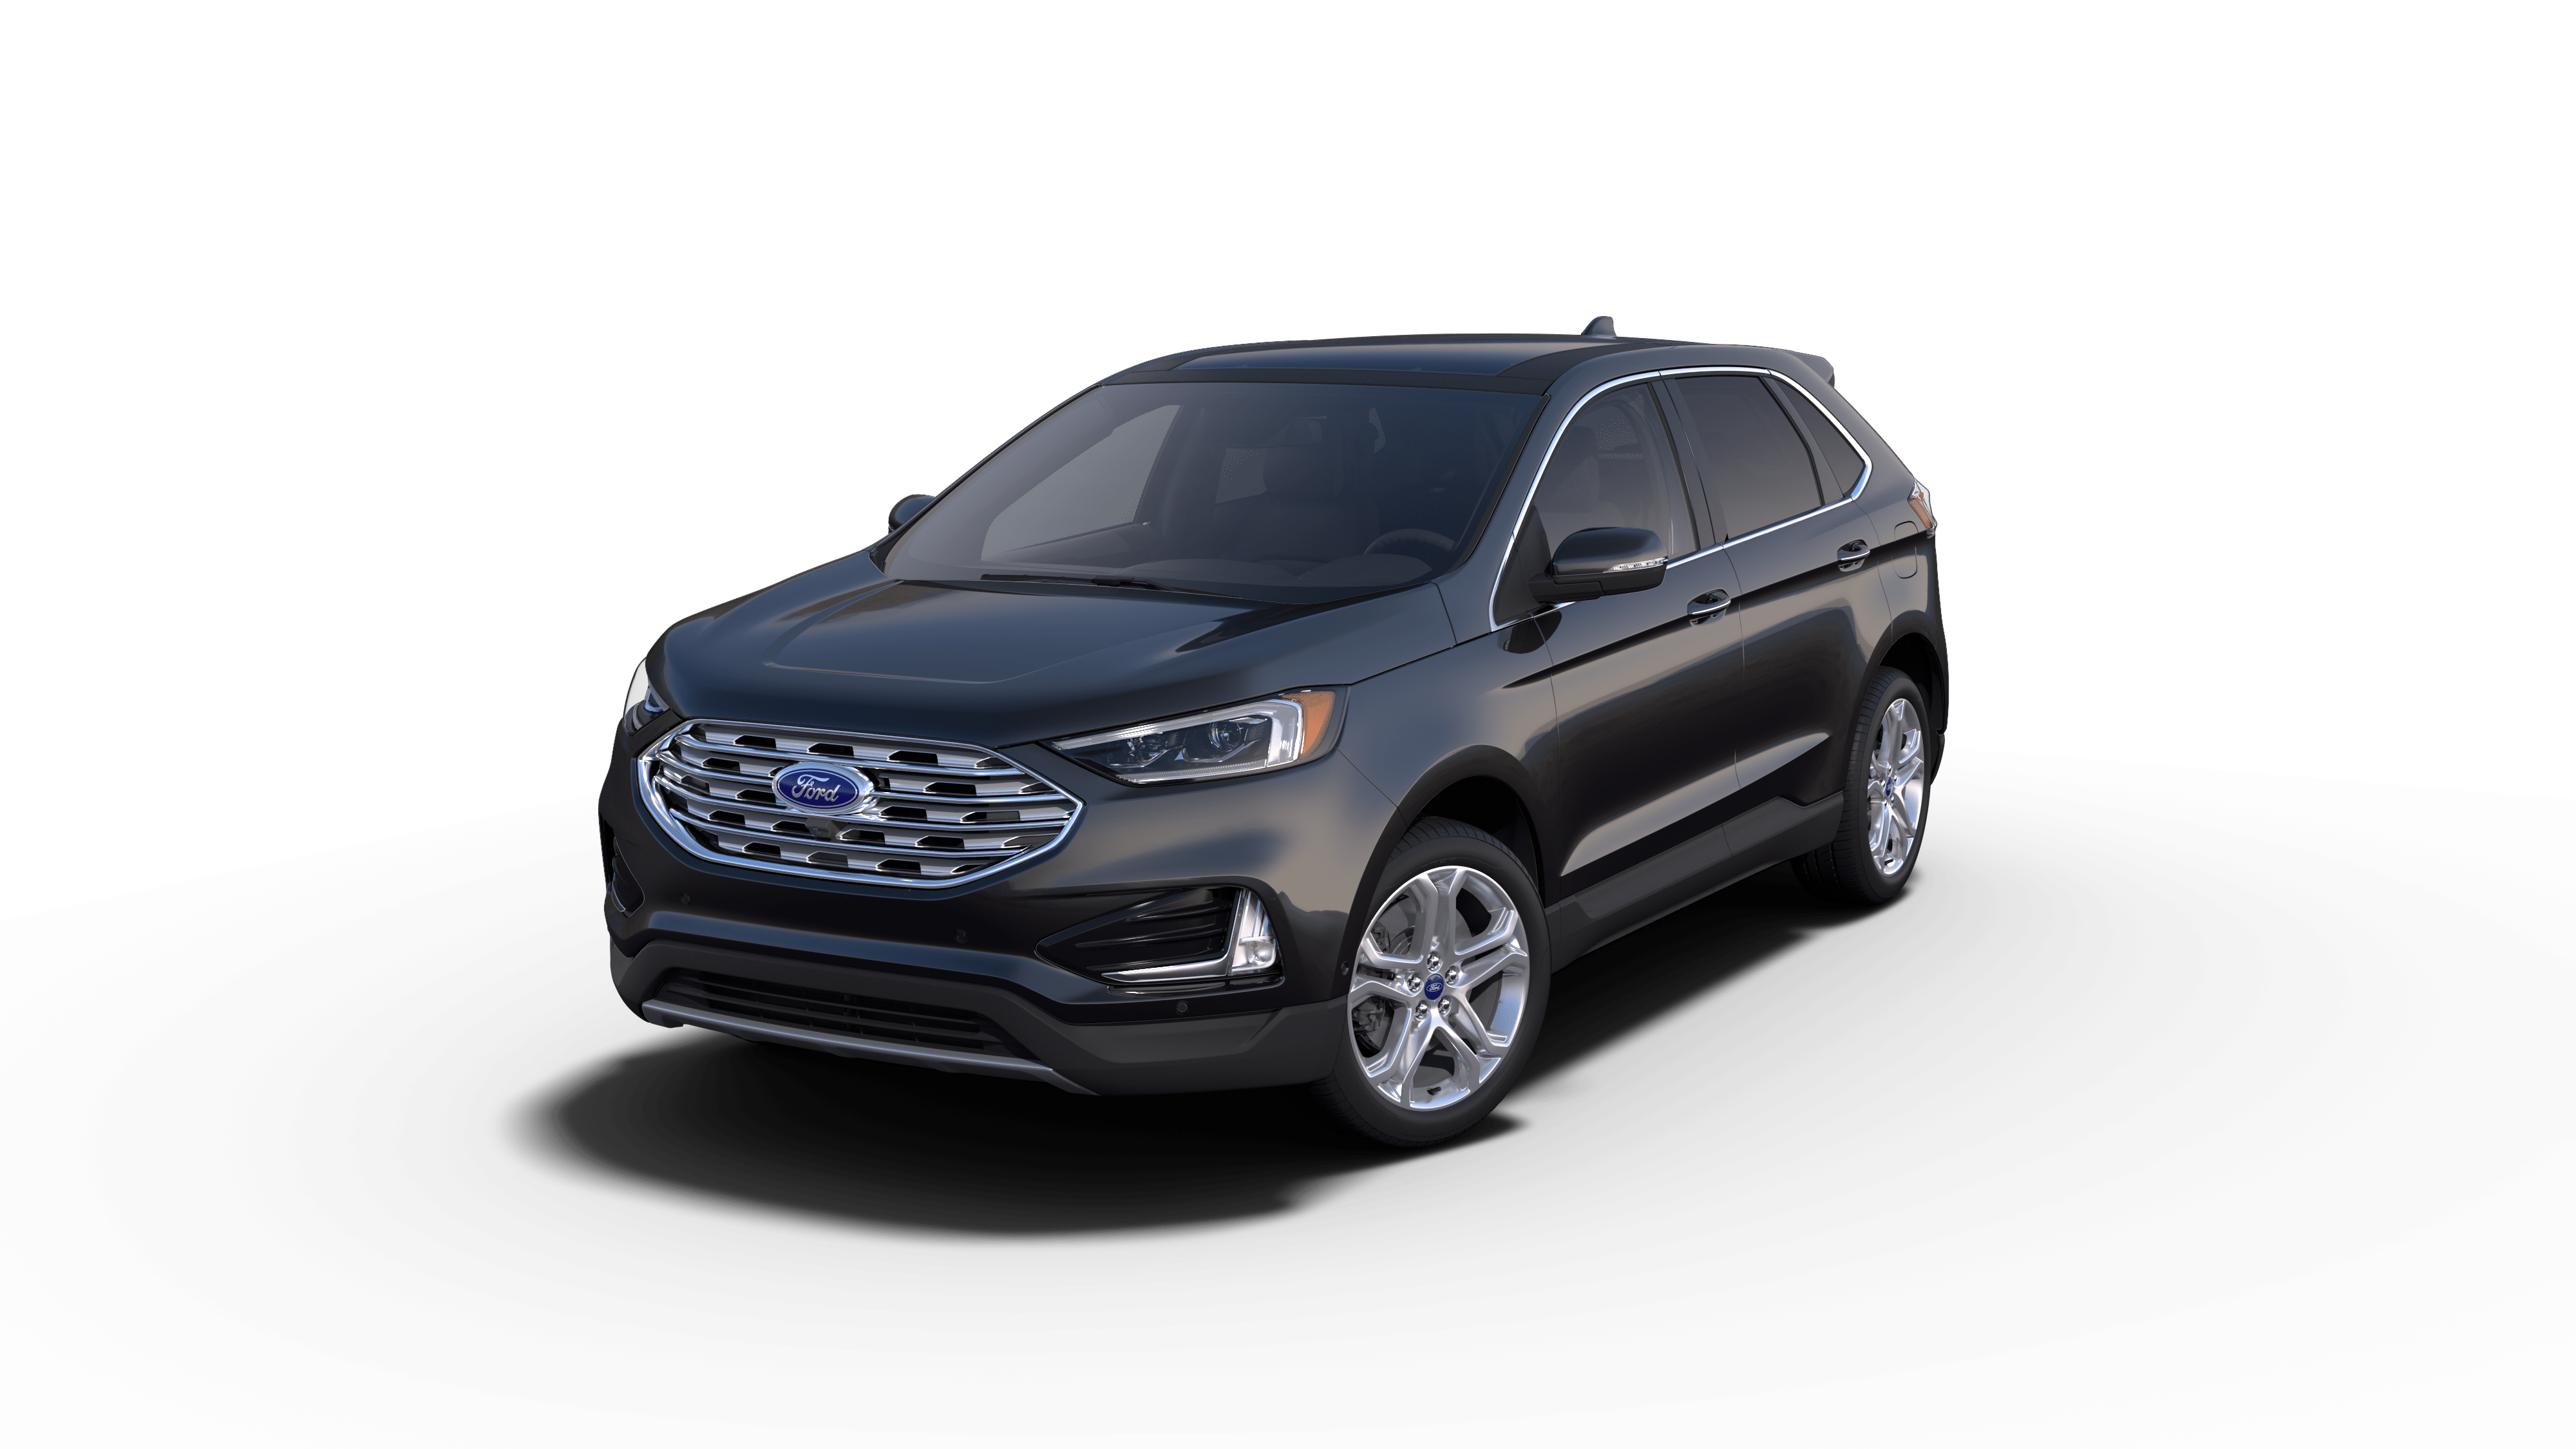 2019 Ford Edge Vehicle Photo in Marshall, MI 49068-9548